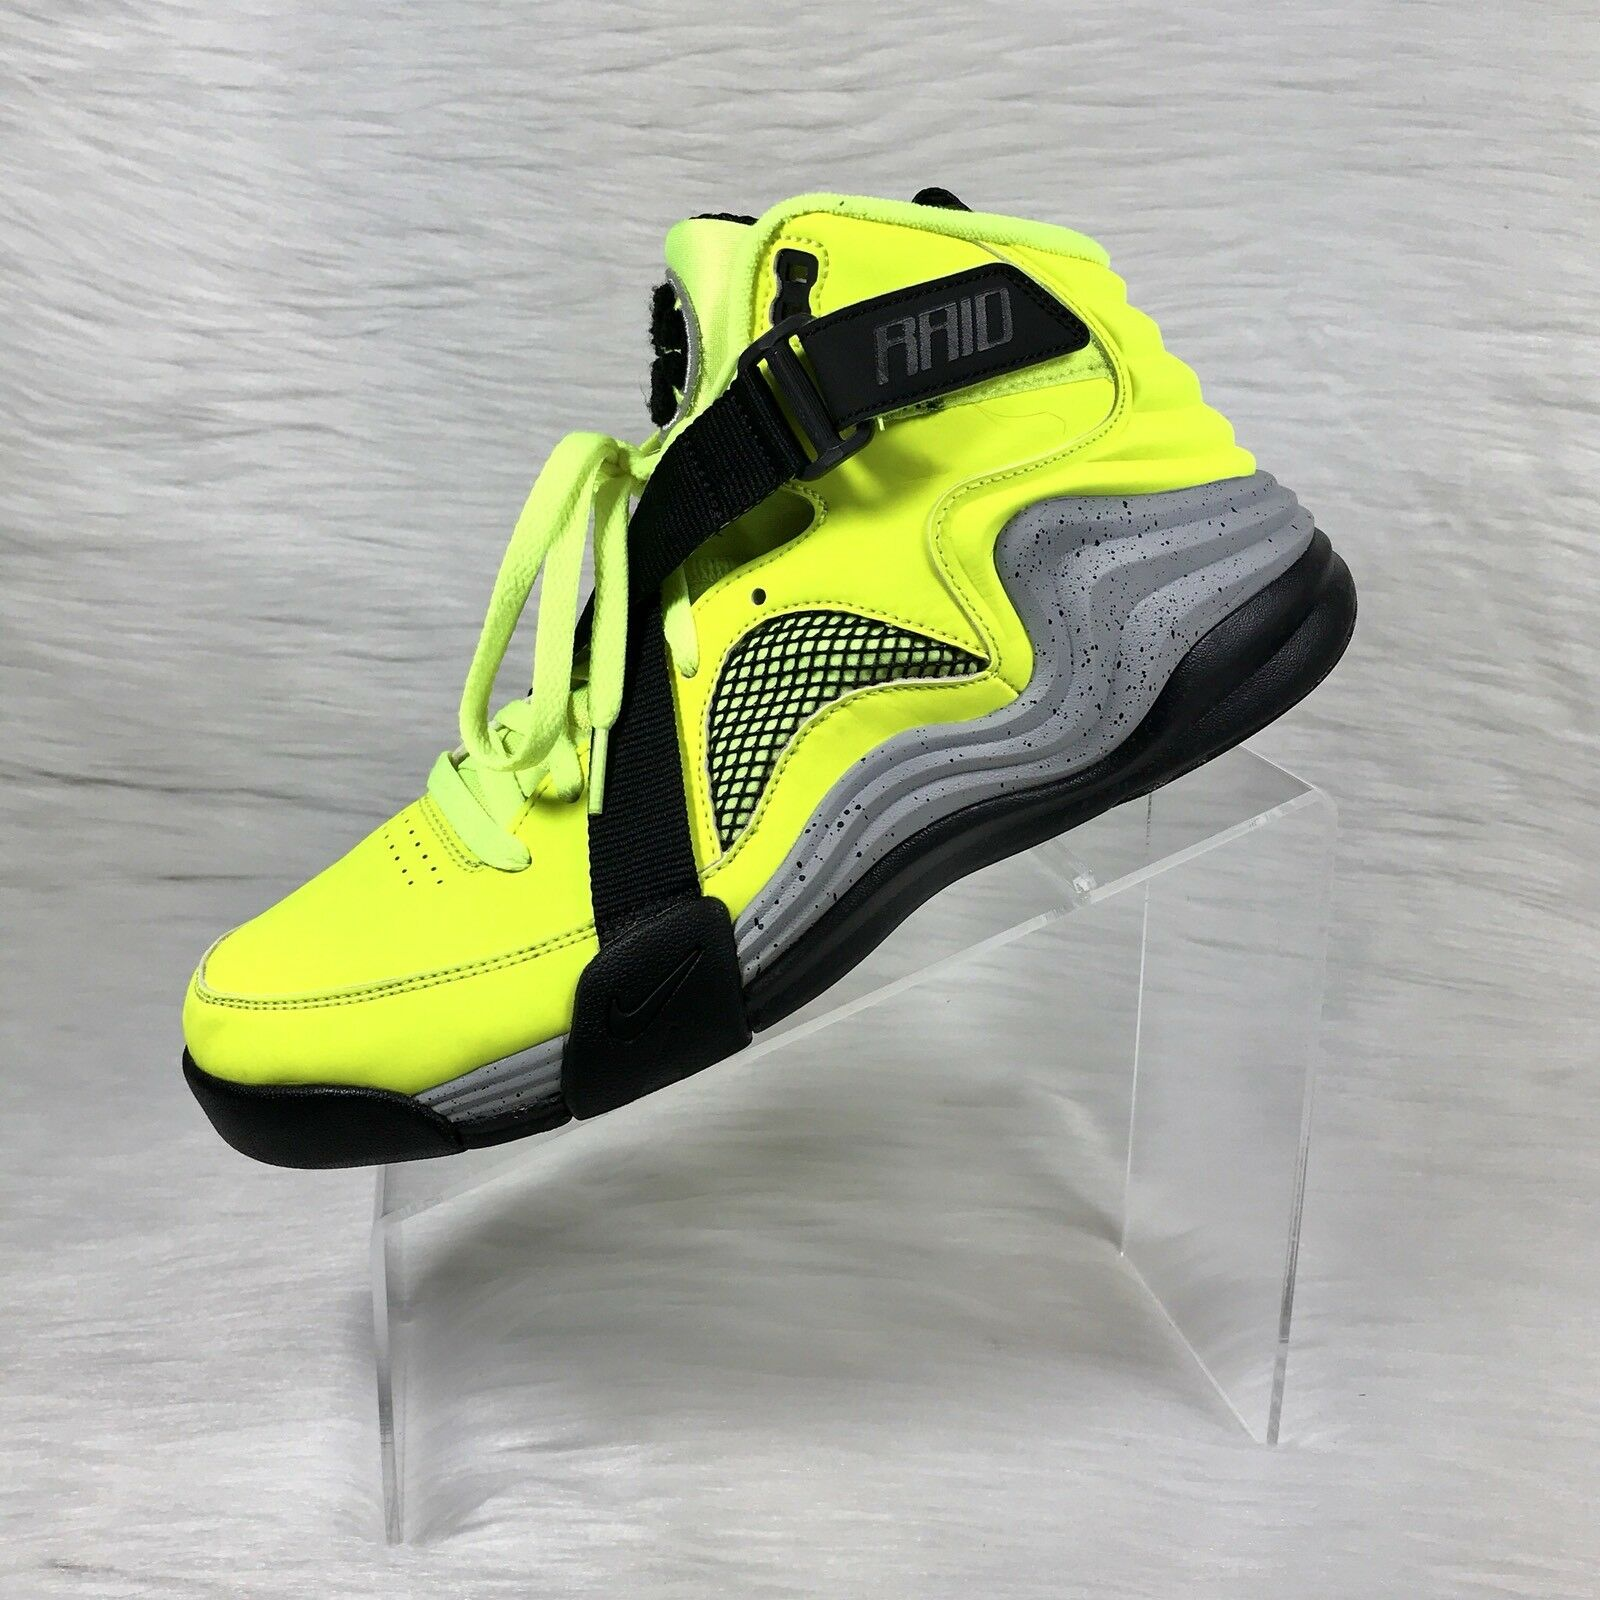 Nike Lunar Raid Men's Athletic shoes 654480-700 yellow size 10.5